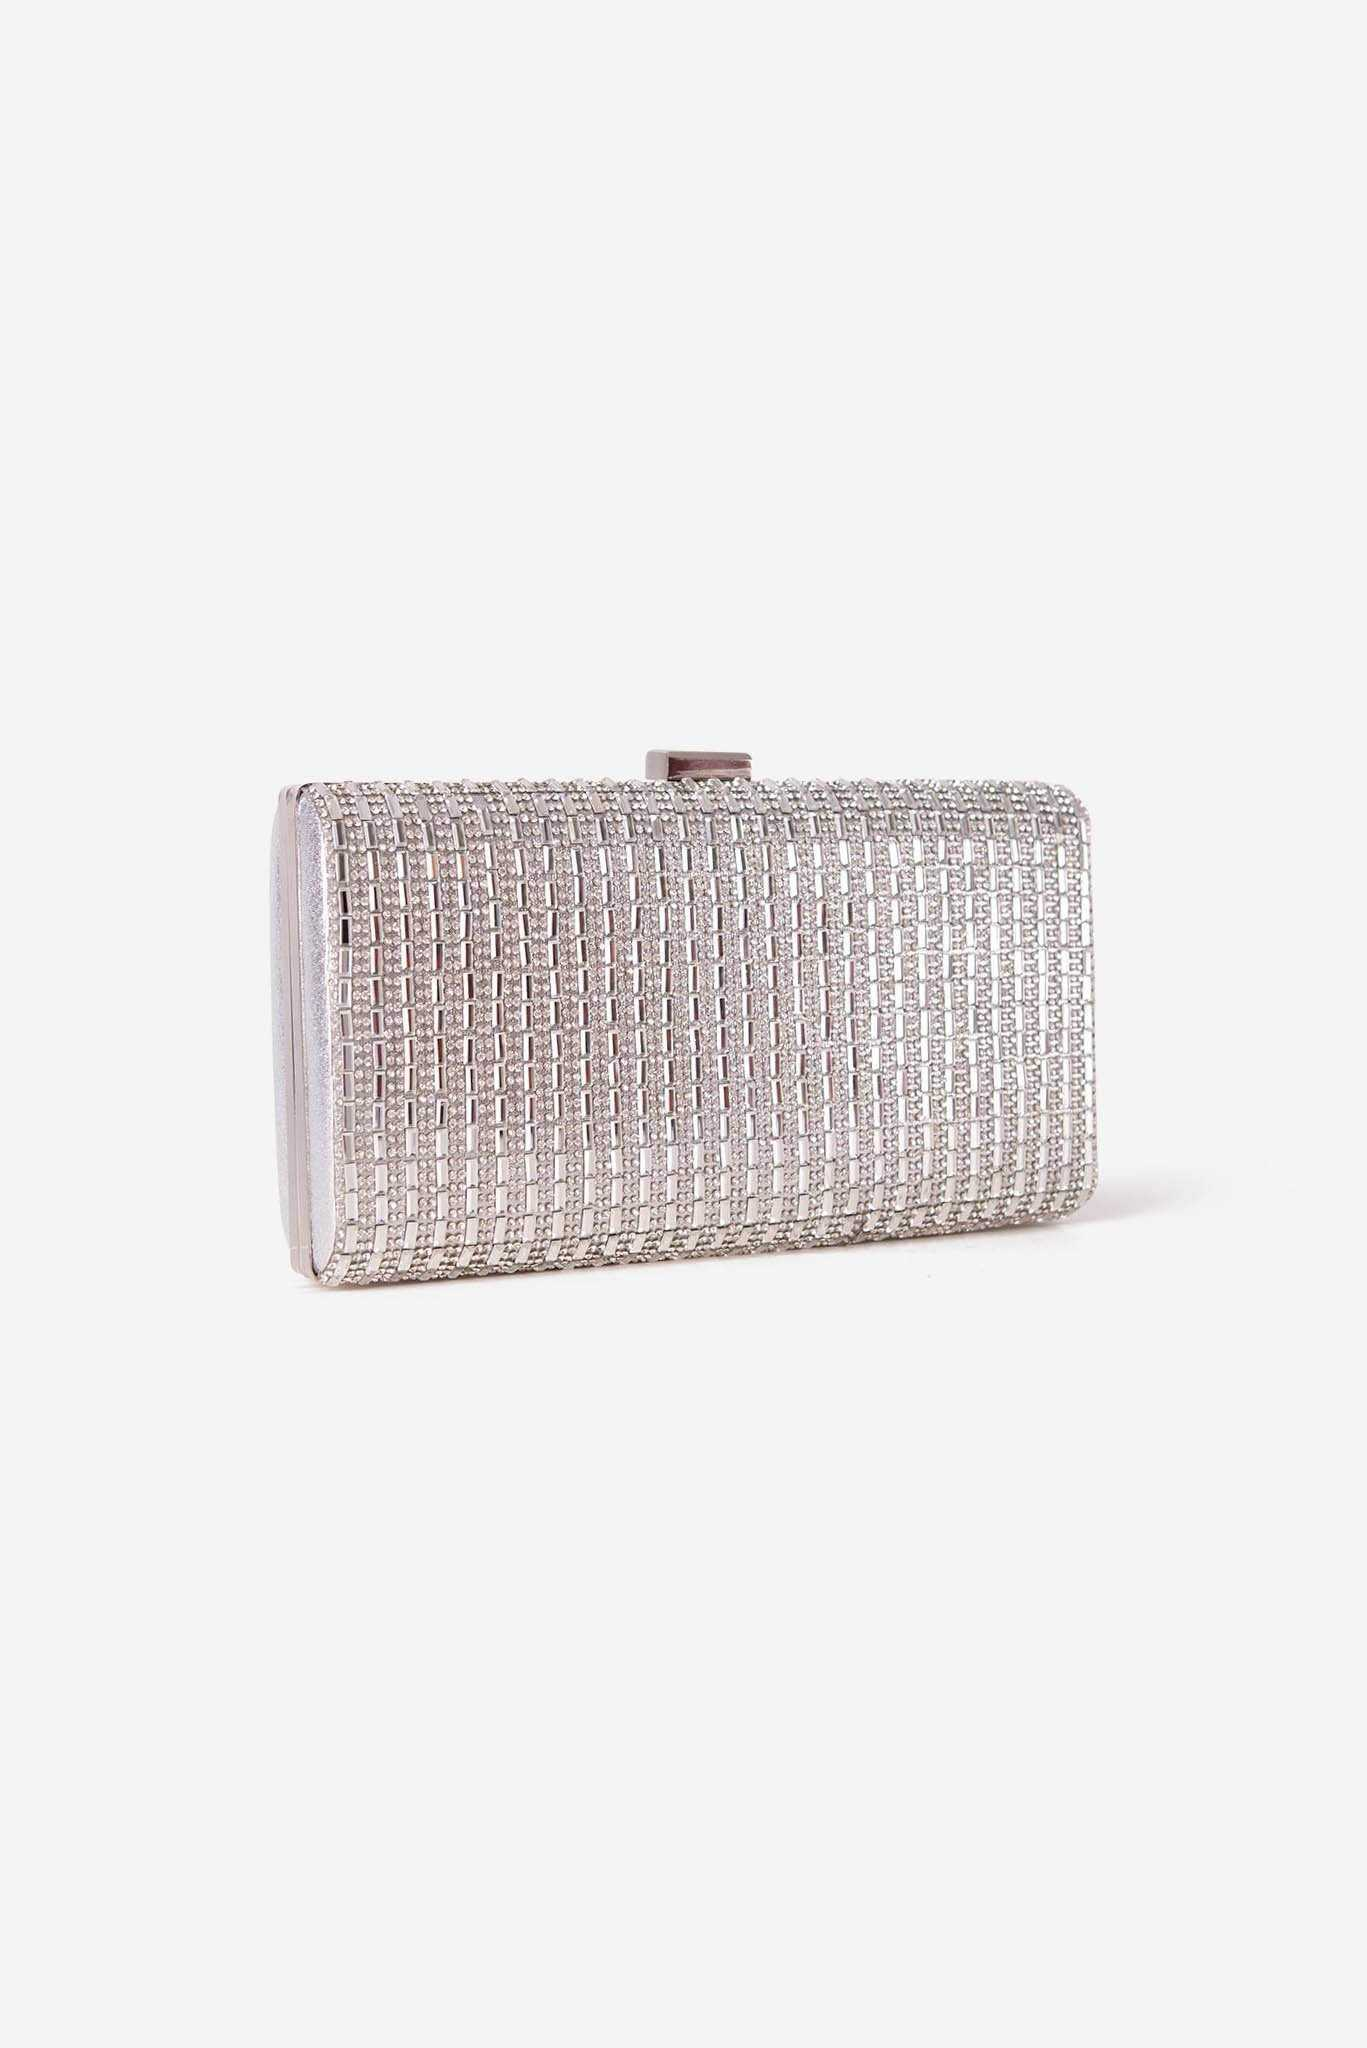 Rhinestone Clutch - Silver | Raw Orange